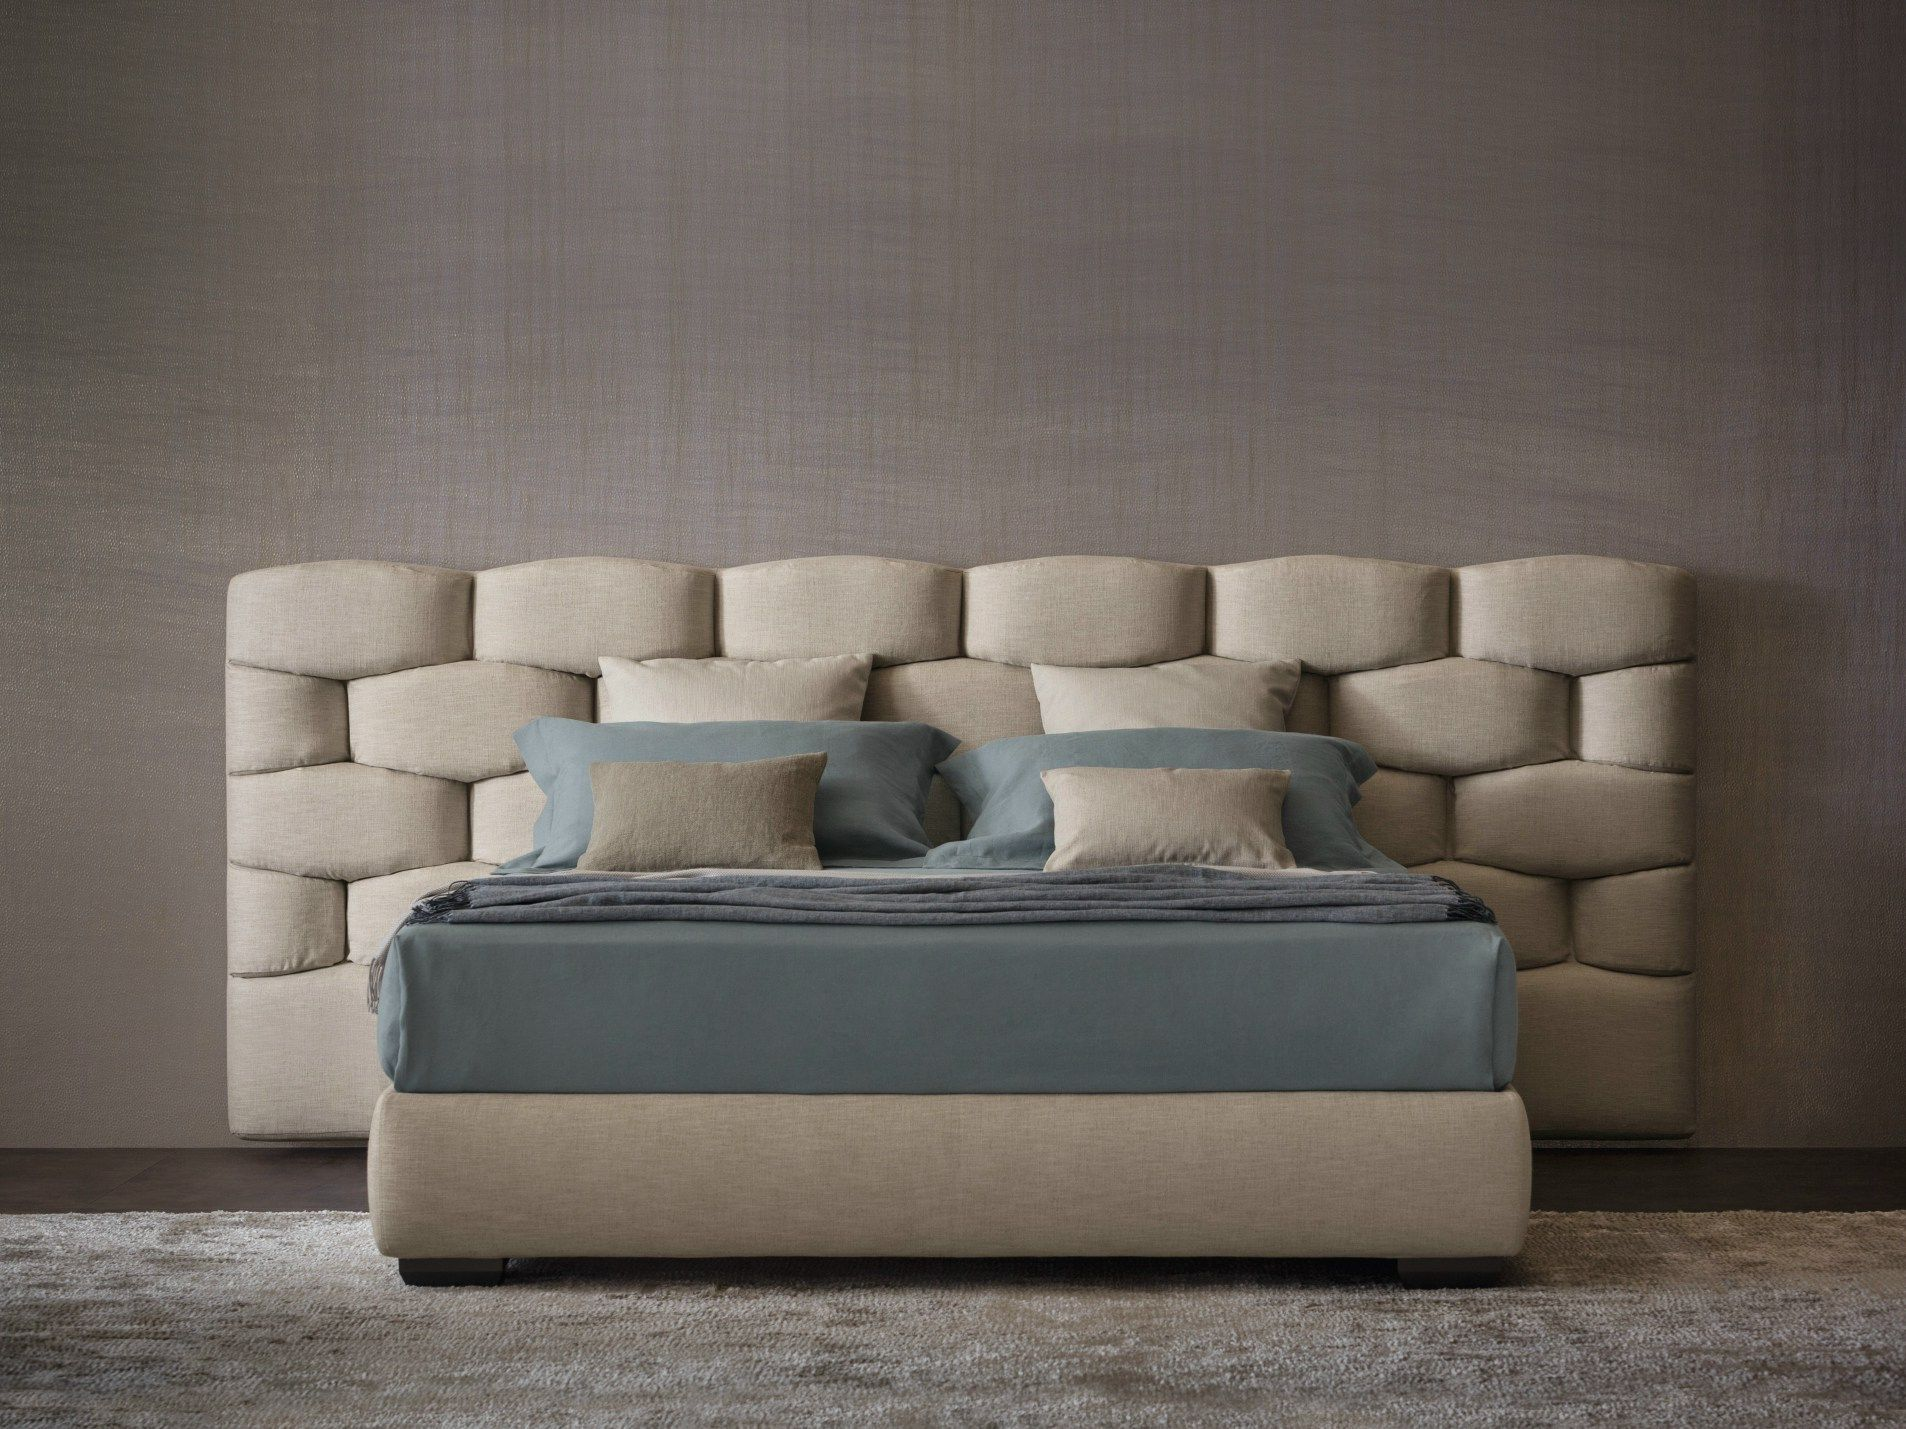 MAJAL | Bed With Upholstered Headboard By Flou | Design Carlo Colombo